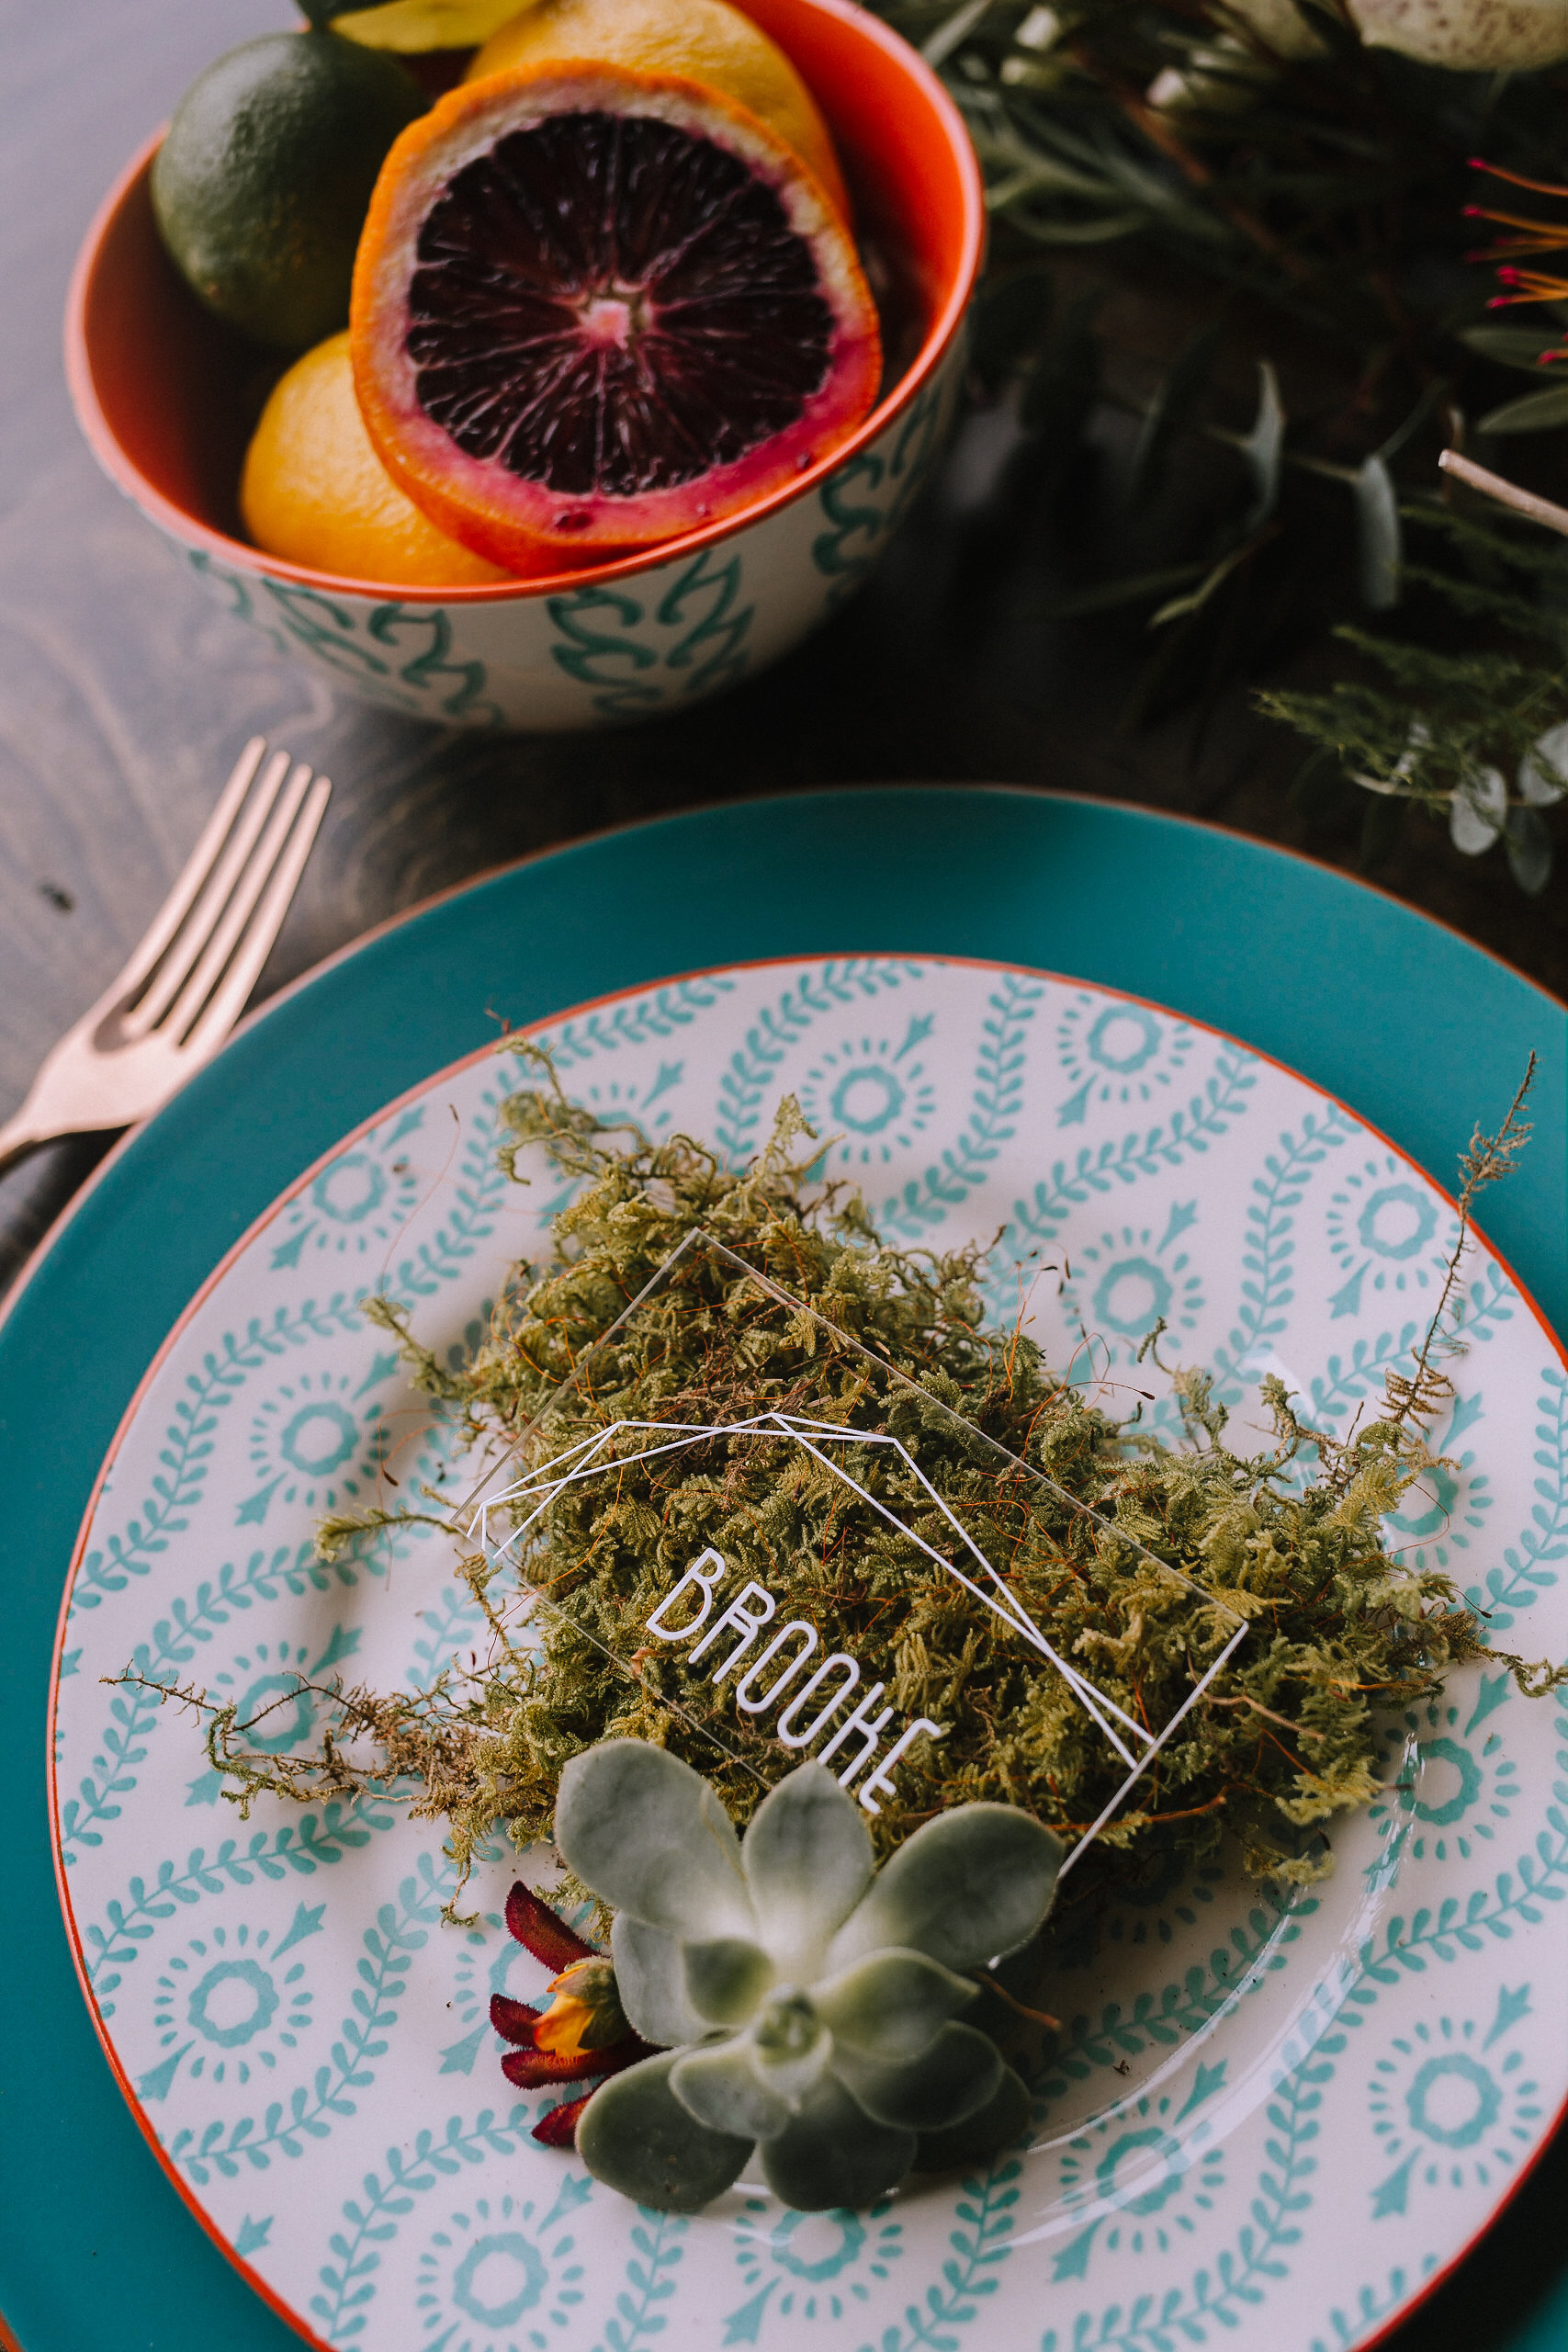 Acrylic escort card with moss at wedding table setting for fall vintage boho styled shoot designed by exhale events. Get inspired by these gorgeous wedding details at exhale-events.com!